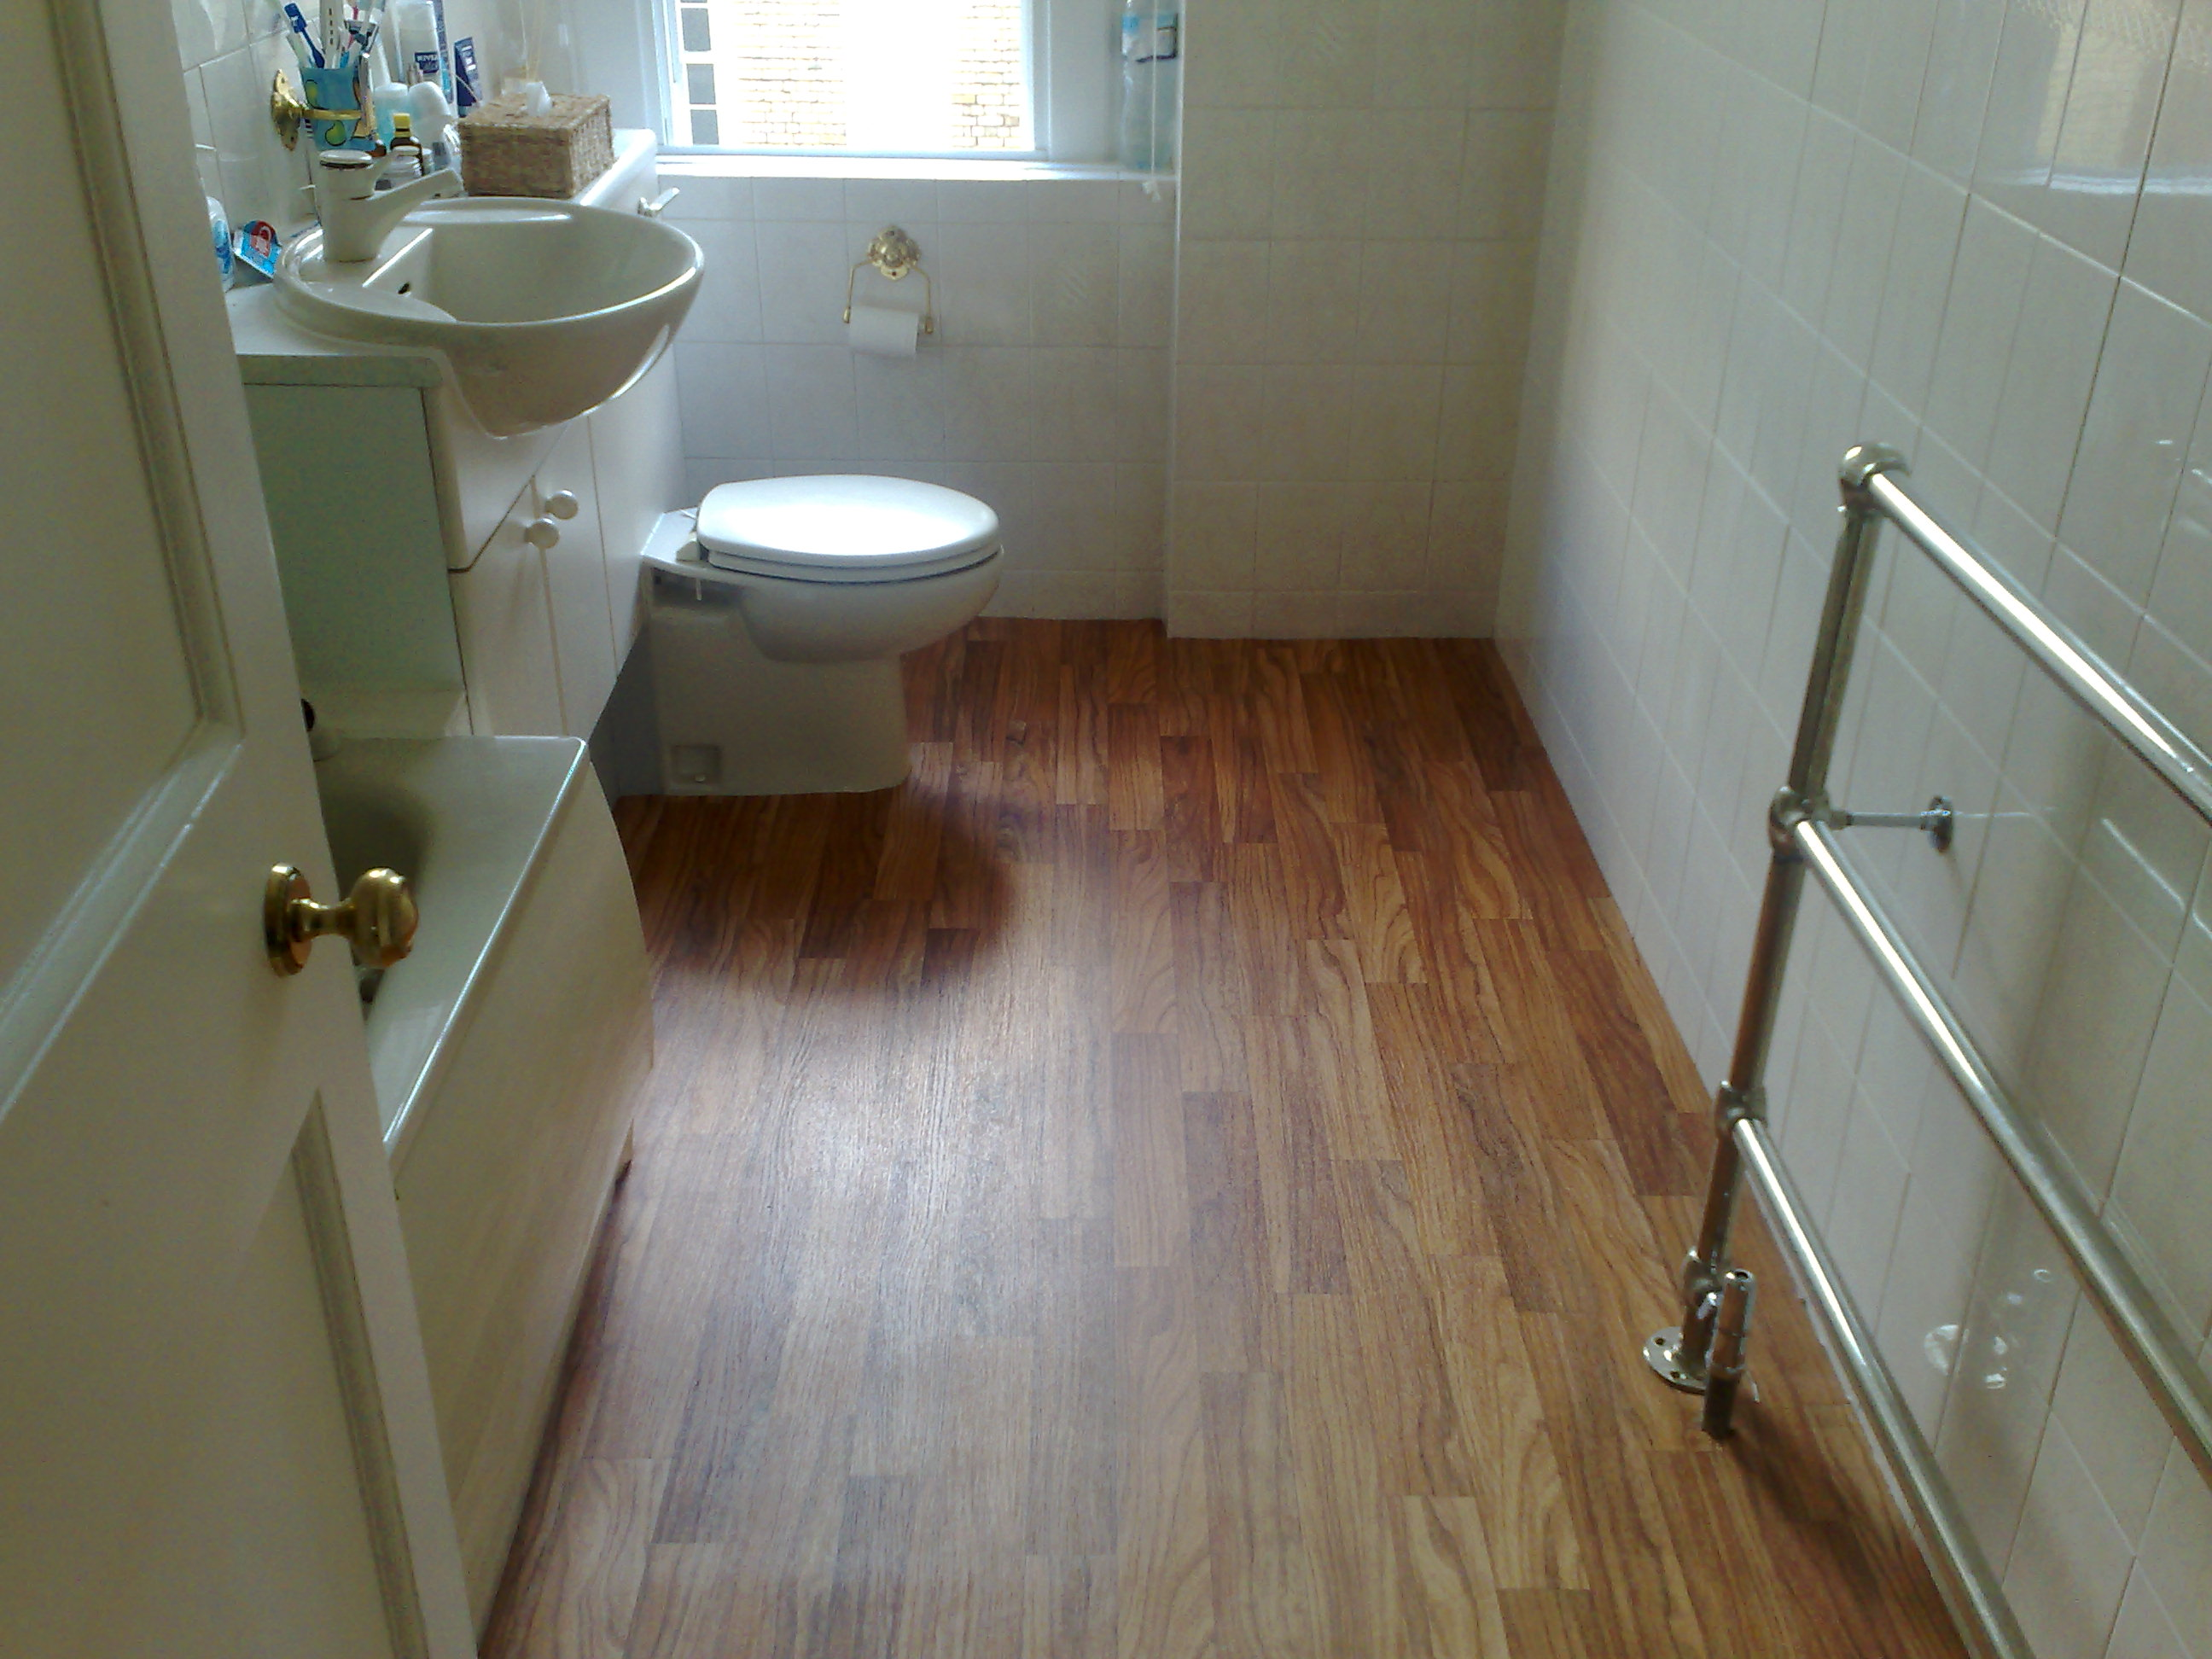 Fliesen In Holzoptik Urban White 26 Cool Ideas And Pictures Of A Bathroom Floor That Look Like Wood